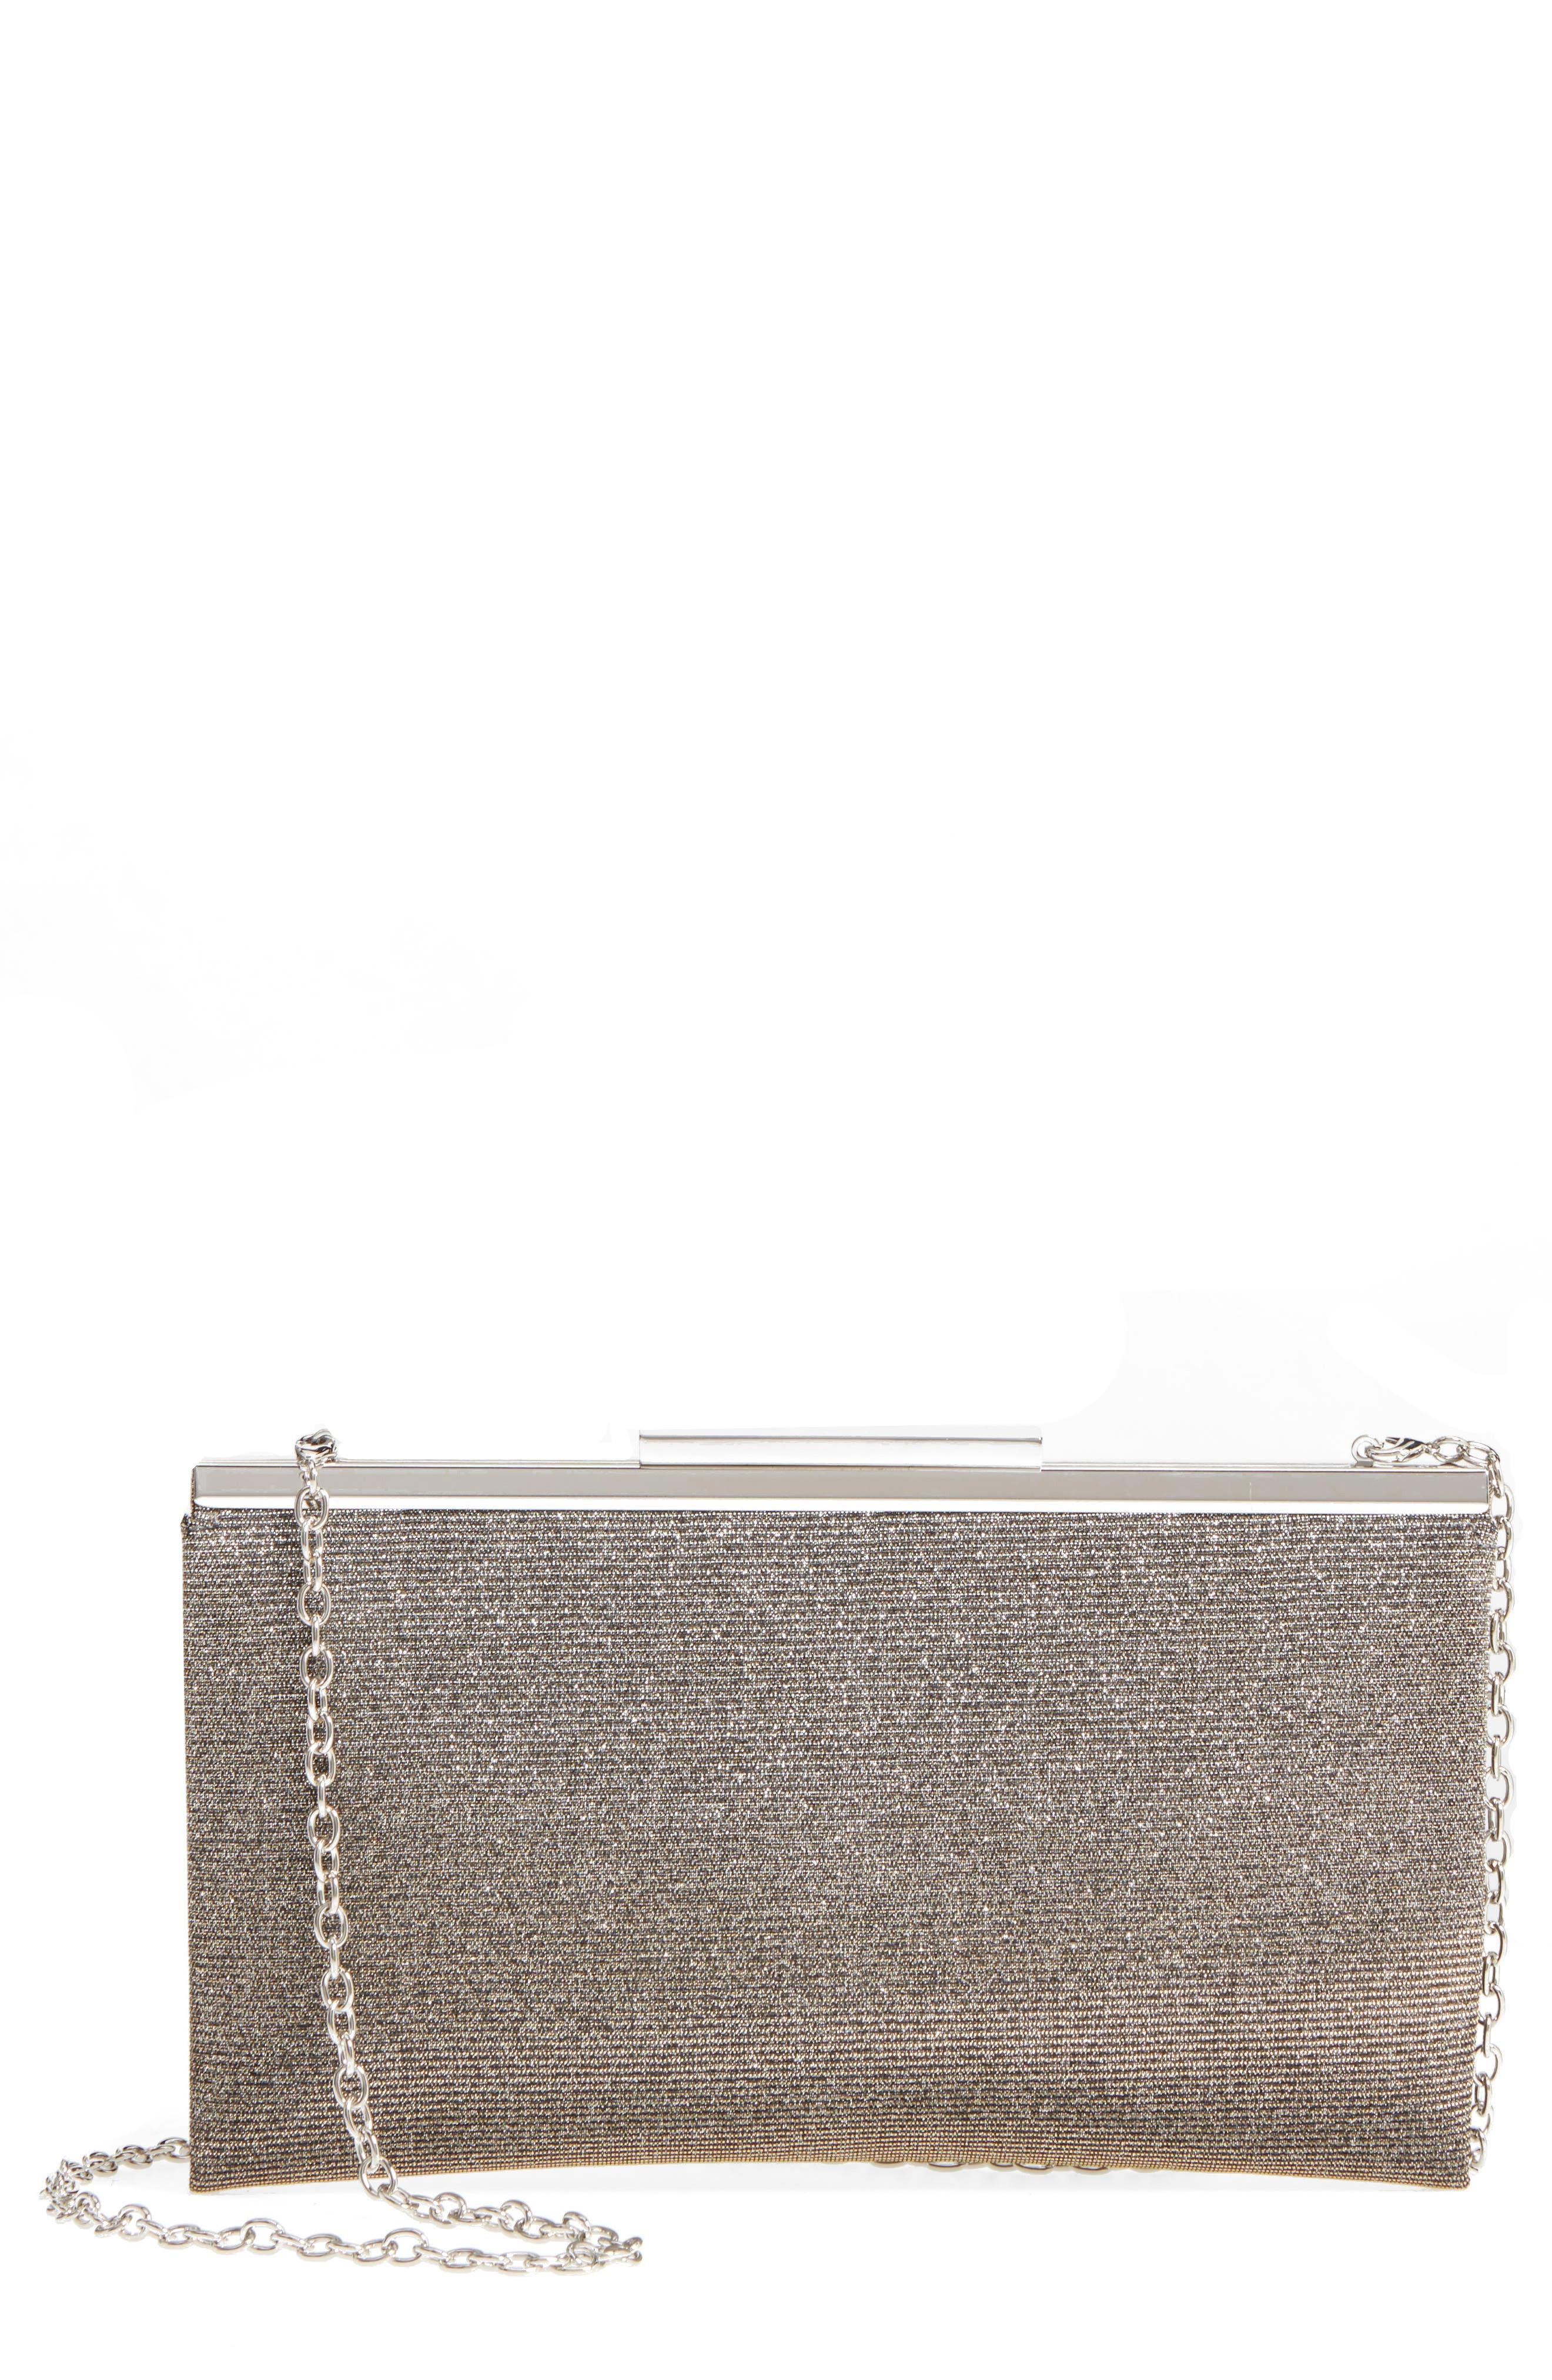 NORDSTROM Glitter Clutch, Main, color, PEWTER